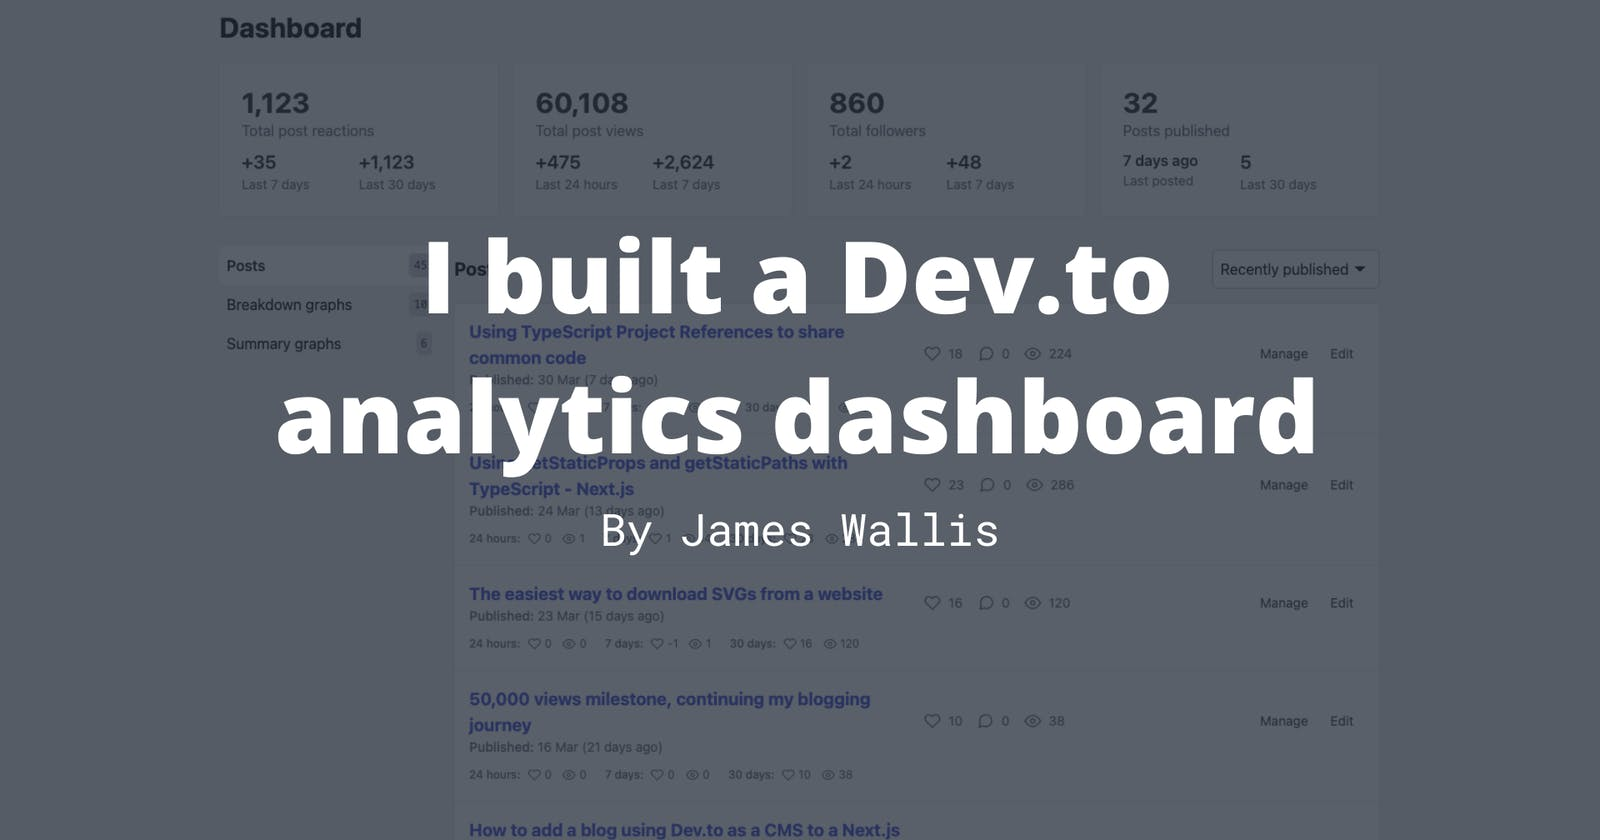 I built an advanced Dev.to dashboard with historic data using Next.js and Azure Functions 📈